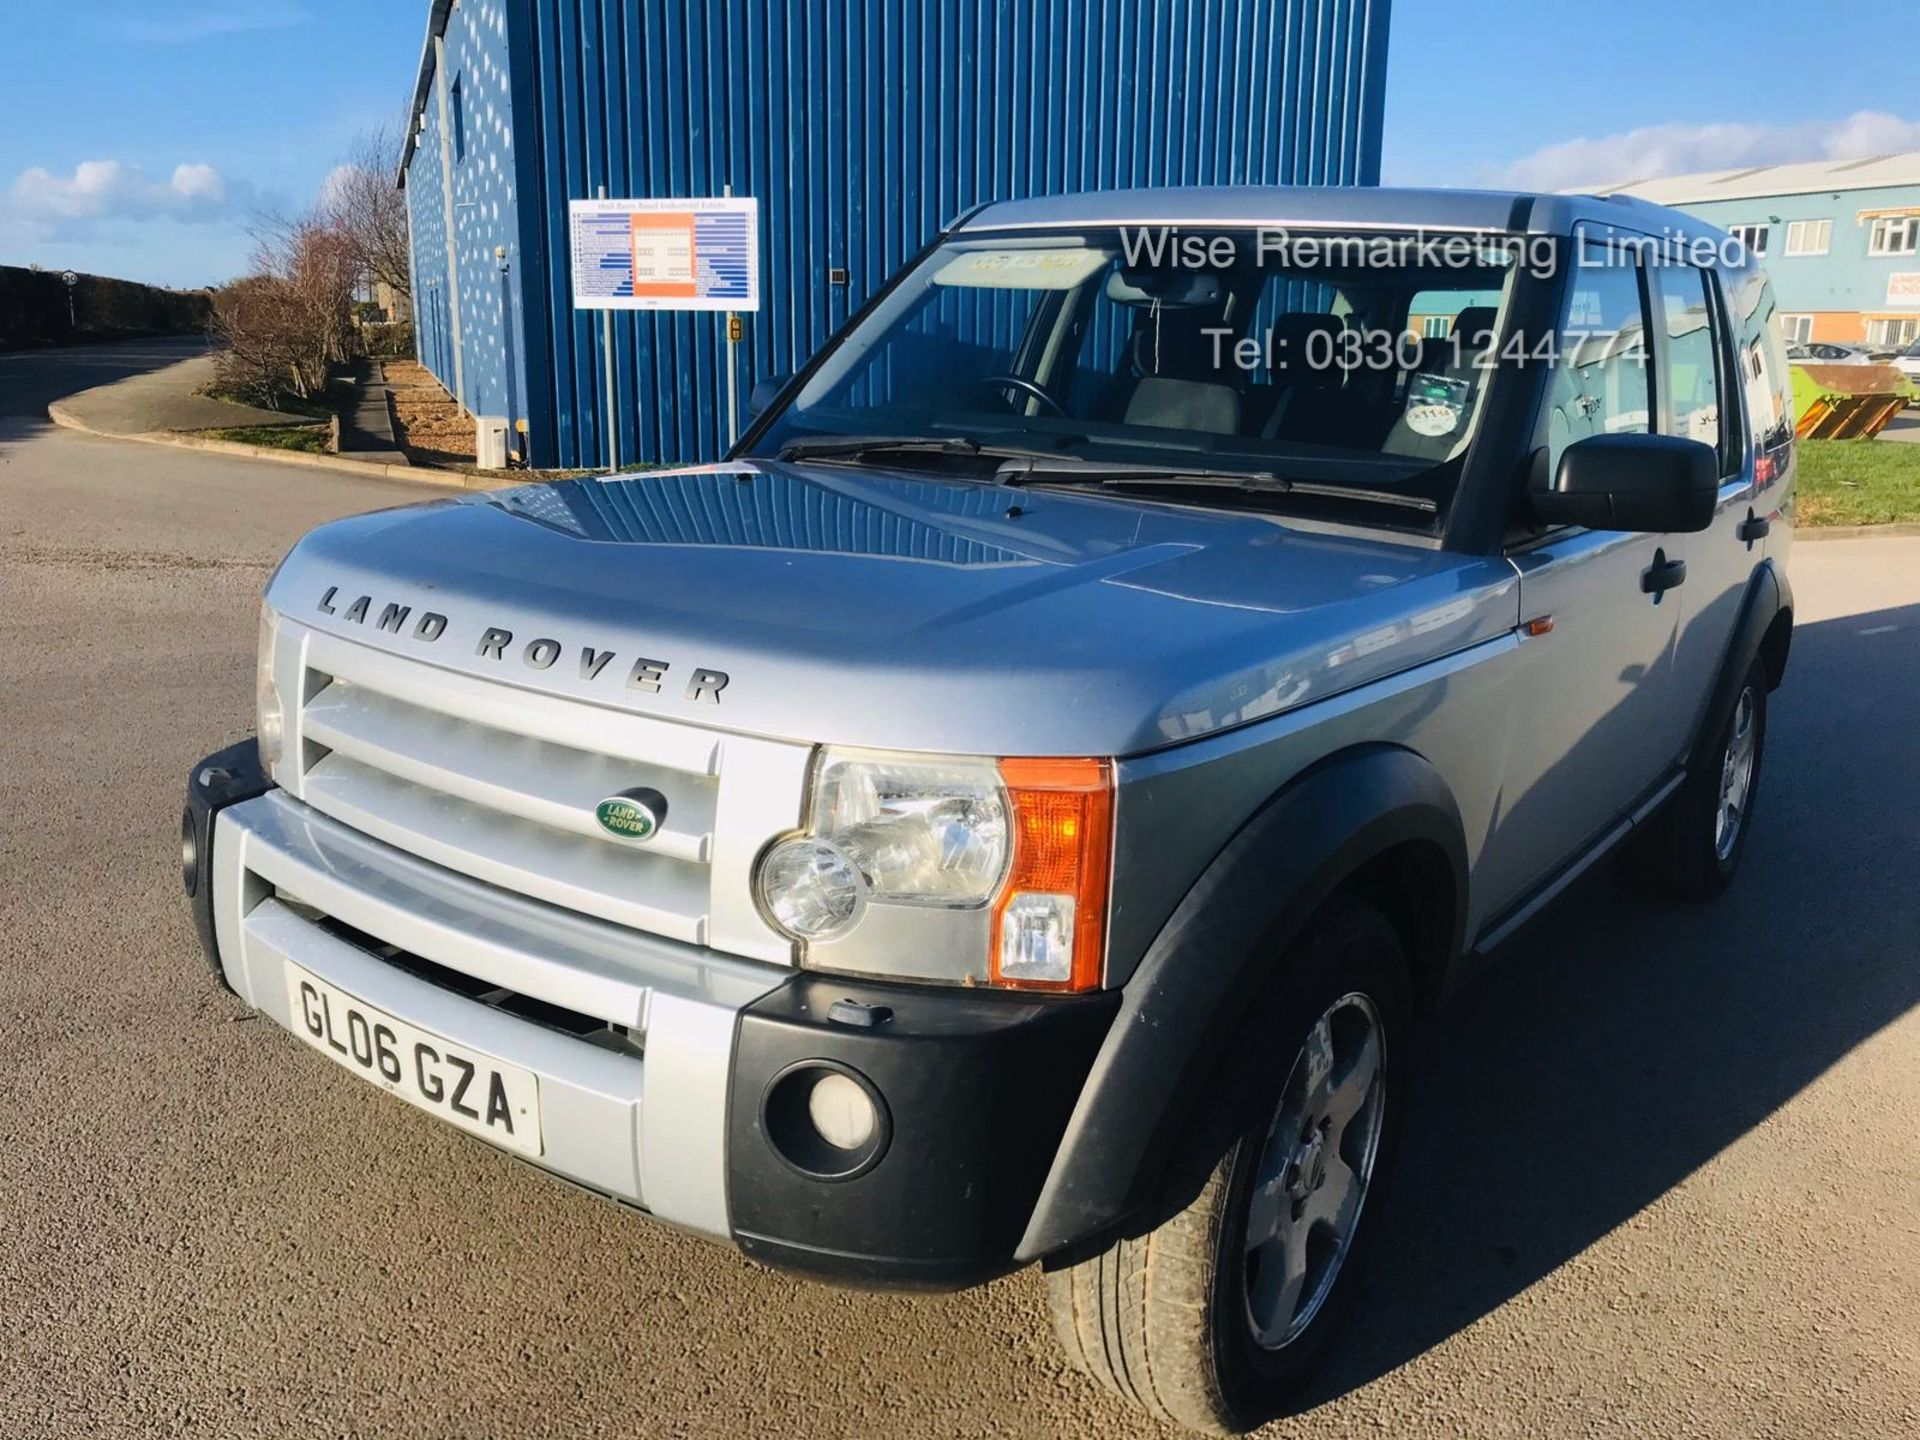 Lot 20 - Land Rover Discovery 3 2.7 TDV6 S - 2006 06 Reg - 7 Seater - Service History -